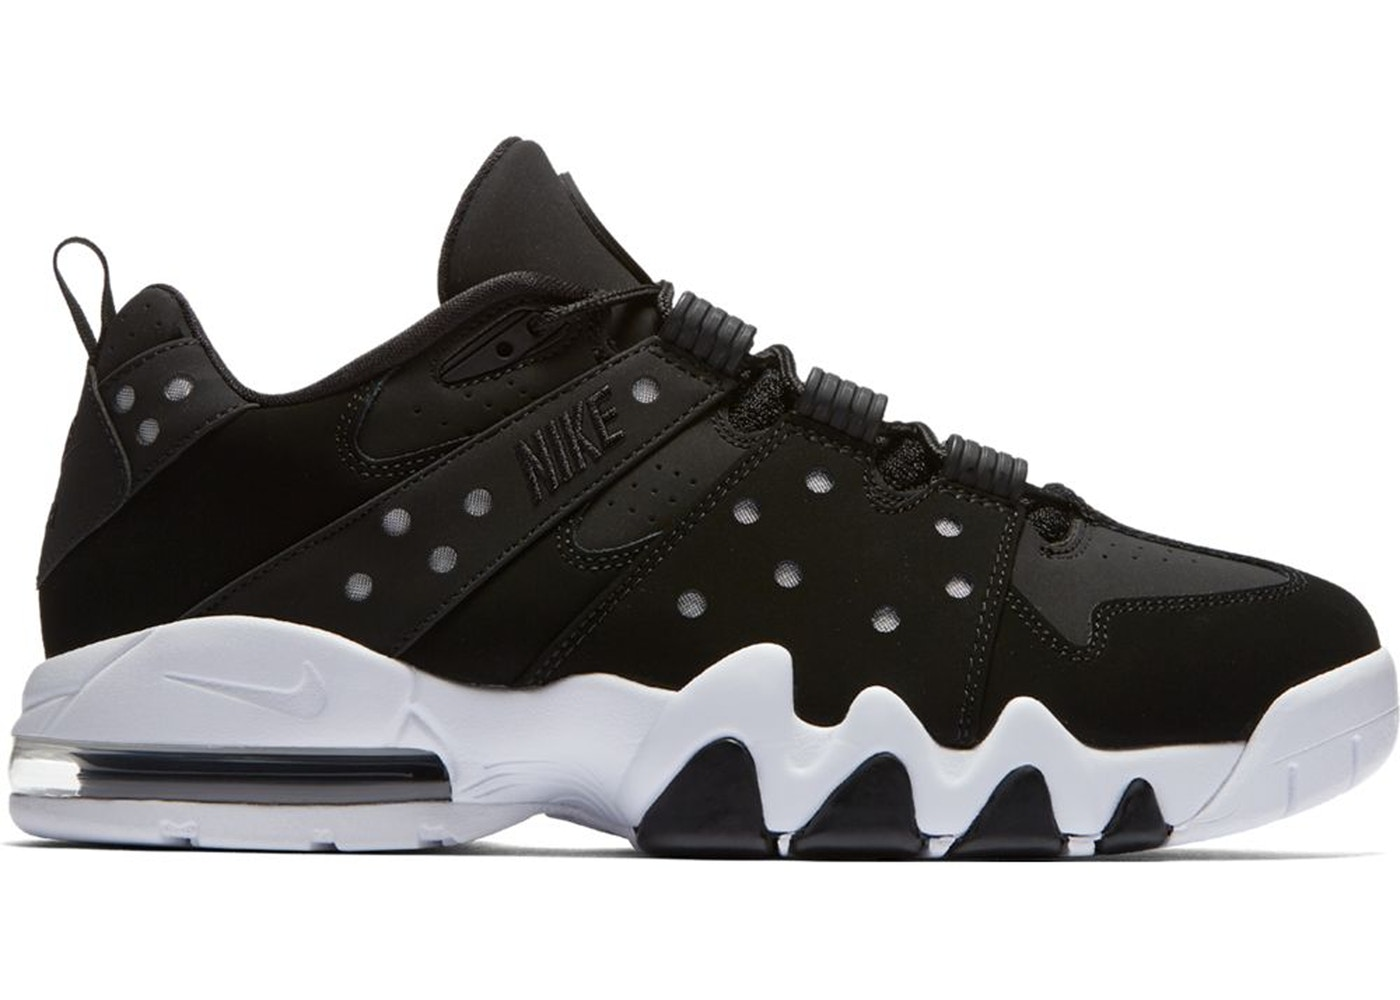 new styles 47688 c433b Sell. or Ask. Size: 12. View All Bids. Air Max 2 CB 94 Low Black White